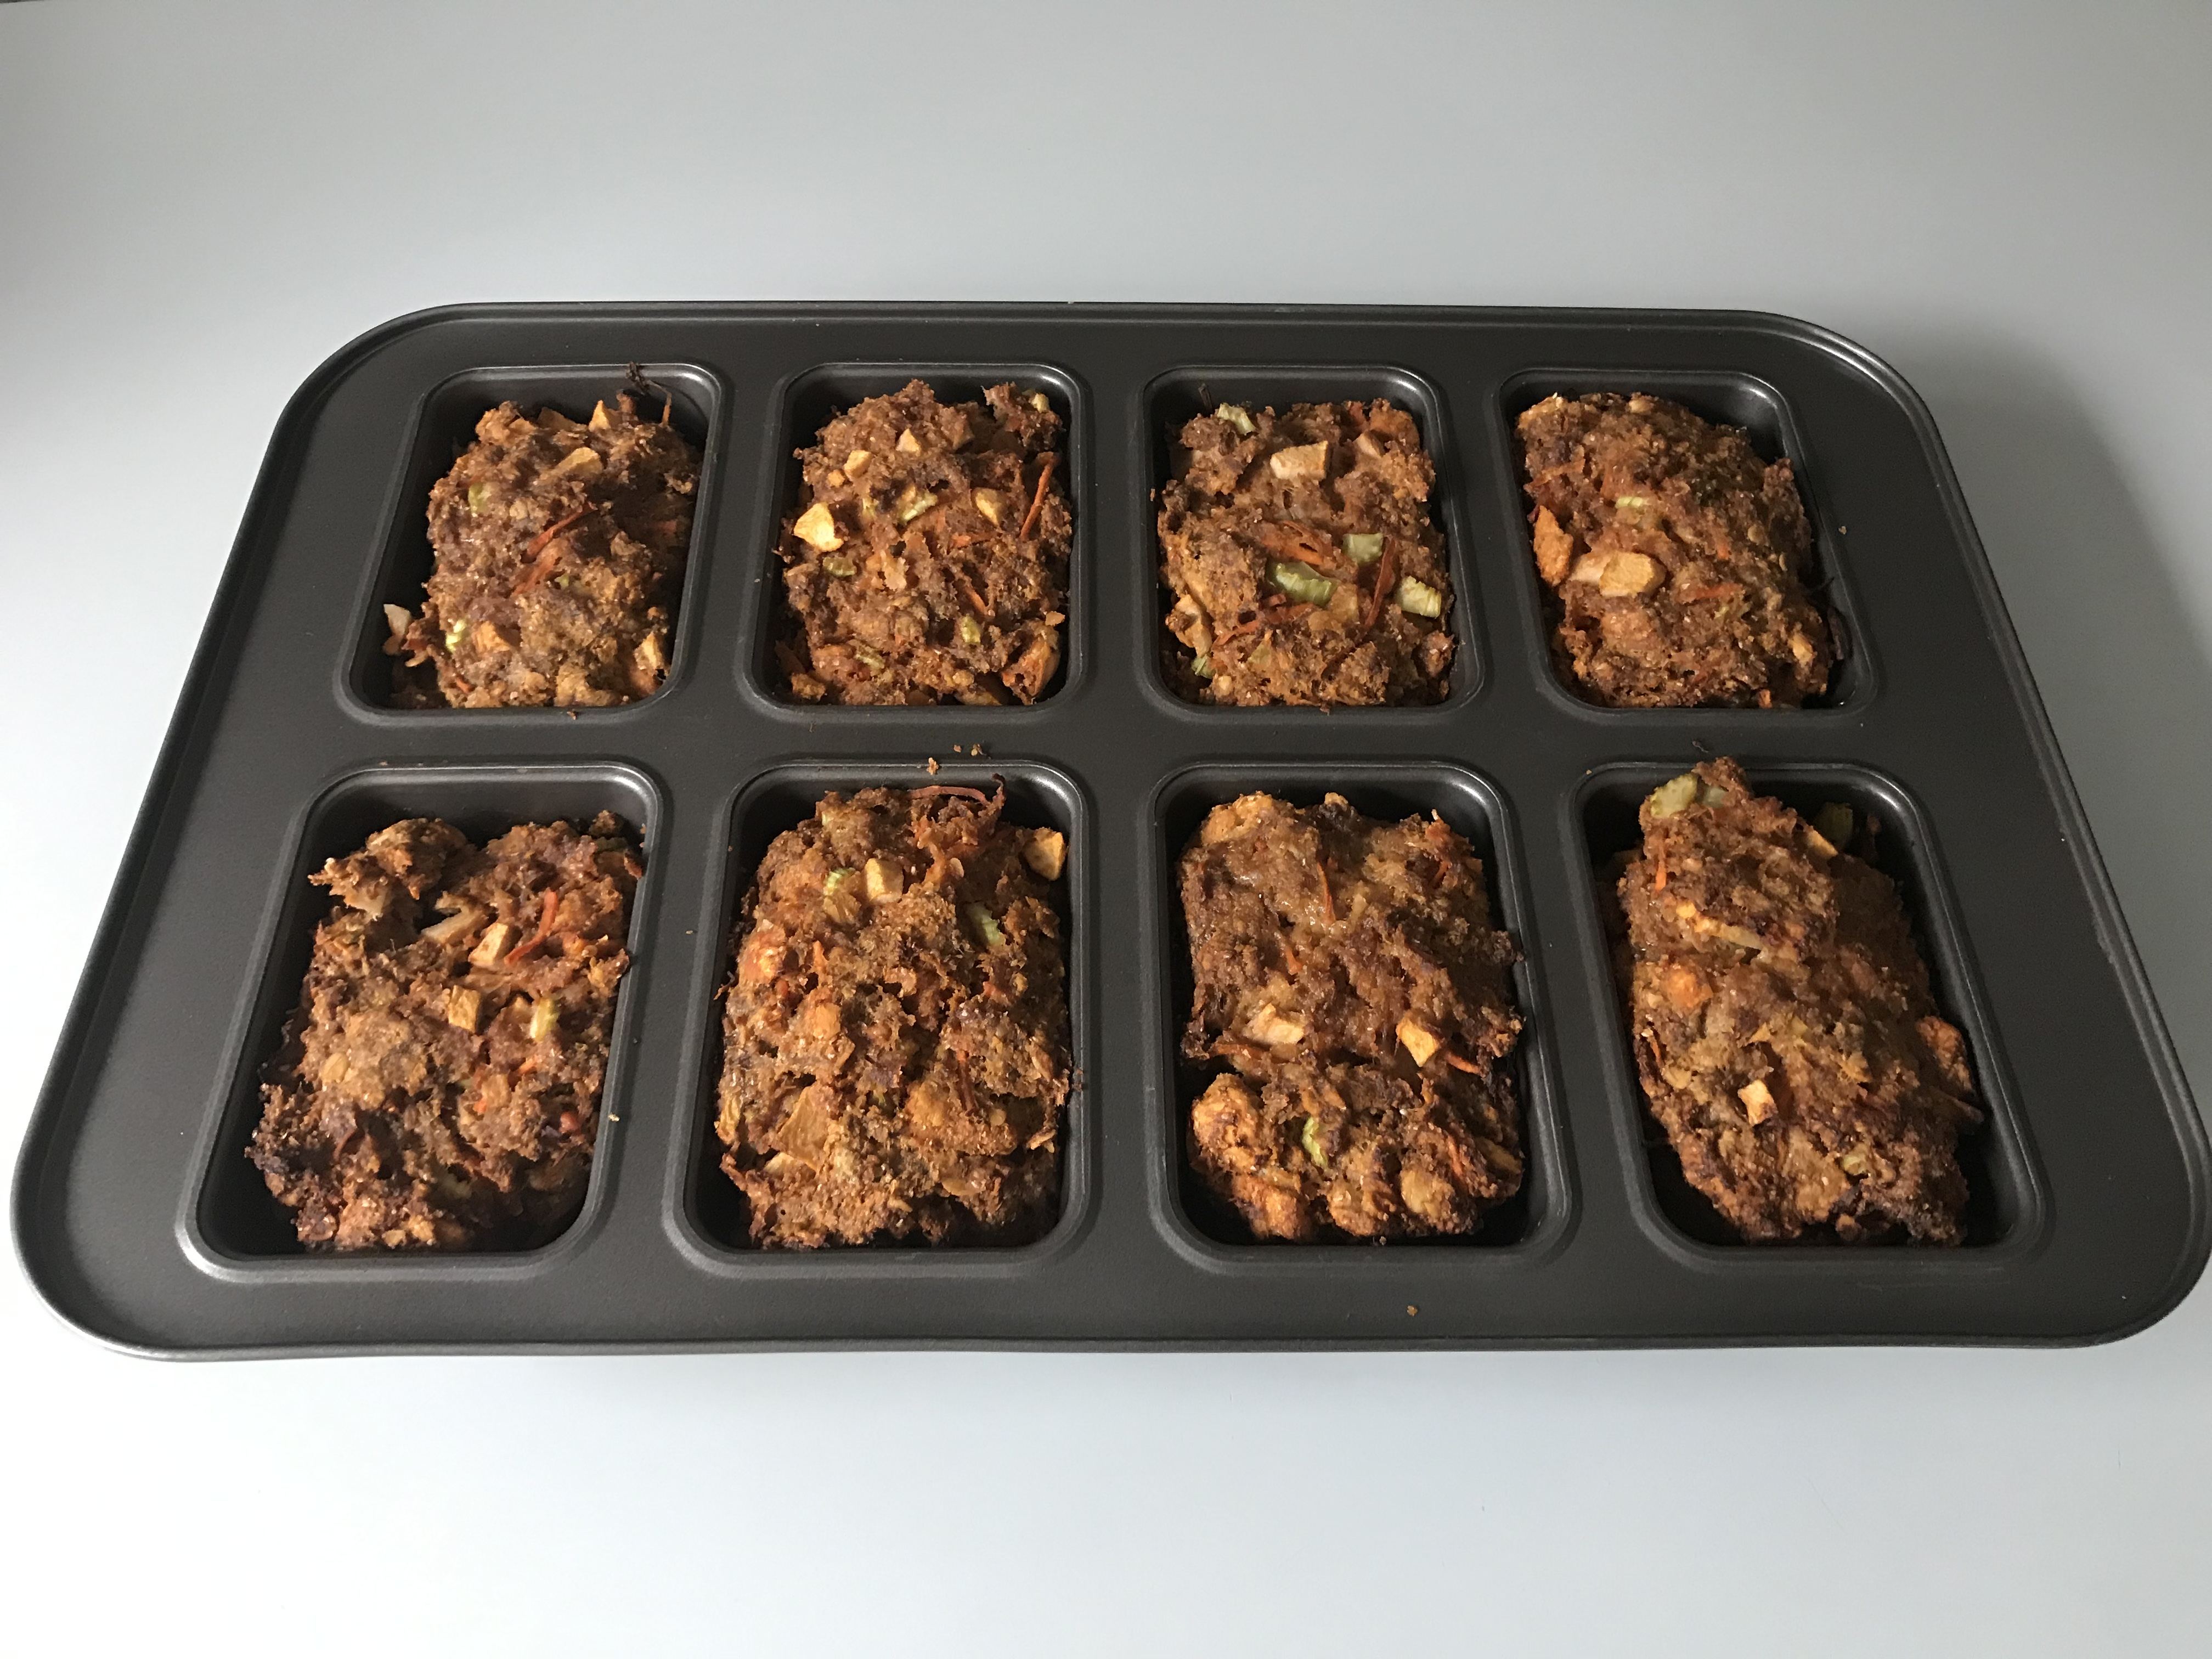 """Here's a simple and nutritious recipe to use as a substitute for canned dog food with ground beef, veggies, rolled oats, tomato paste, and wheat germ. """"My dog really loves this,"""" says Christina. """"I started cooking all his food, except for the kibble. I feel a lot better about what kind of care he is getting now."""""""